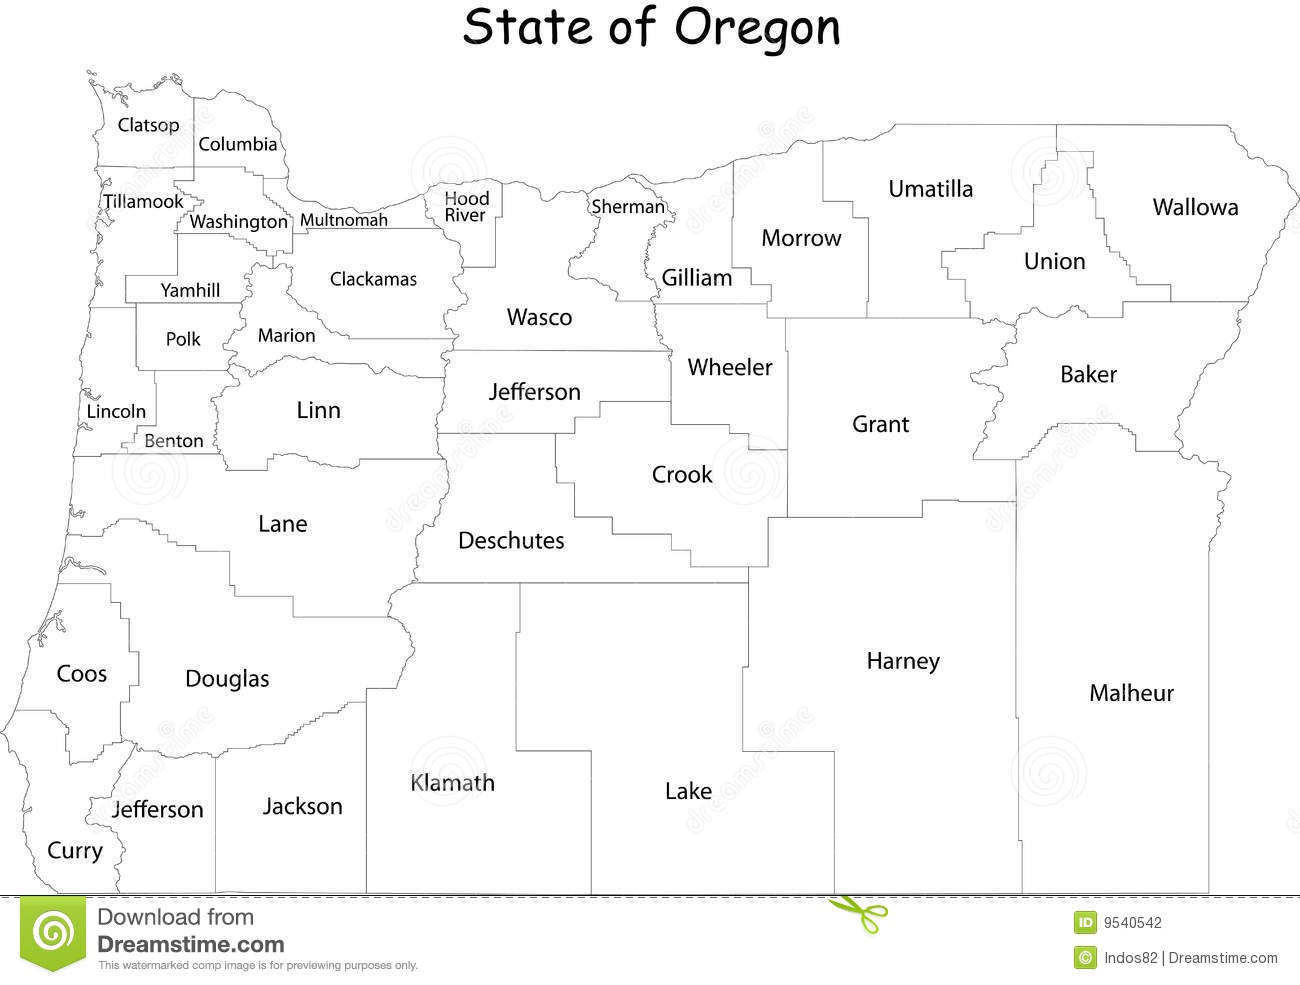 Oregon State Map With Counties.Map Of Oregon State Stock Vector Illustration Of Clackamas 9540542